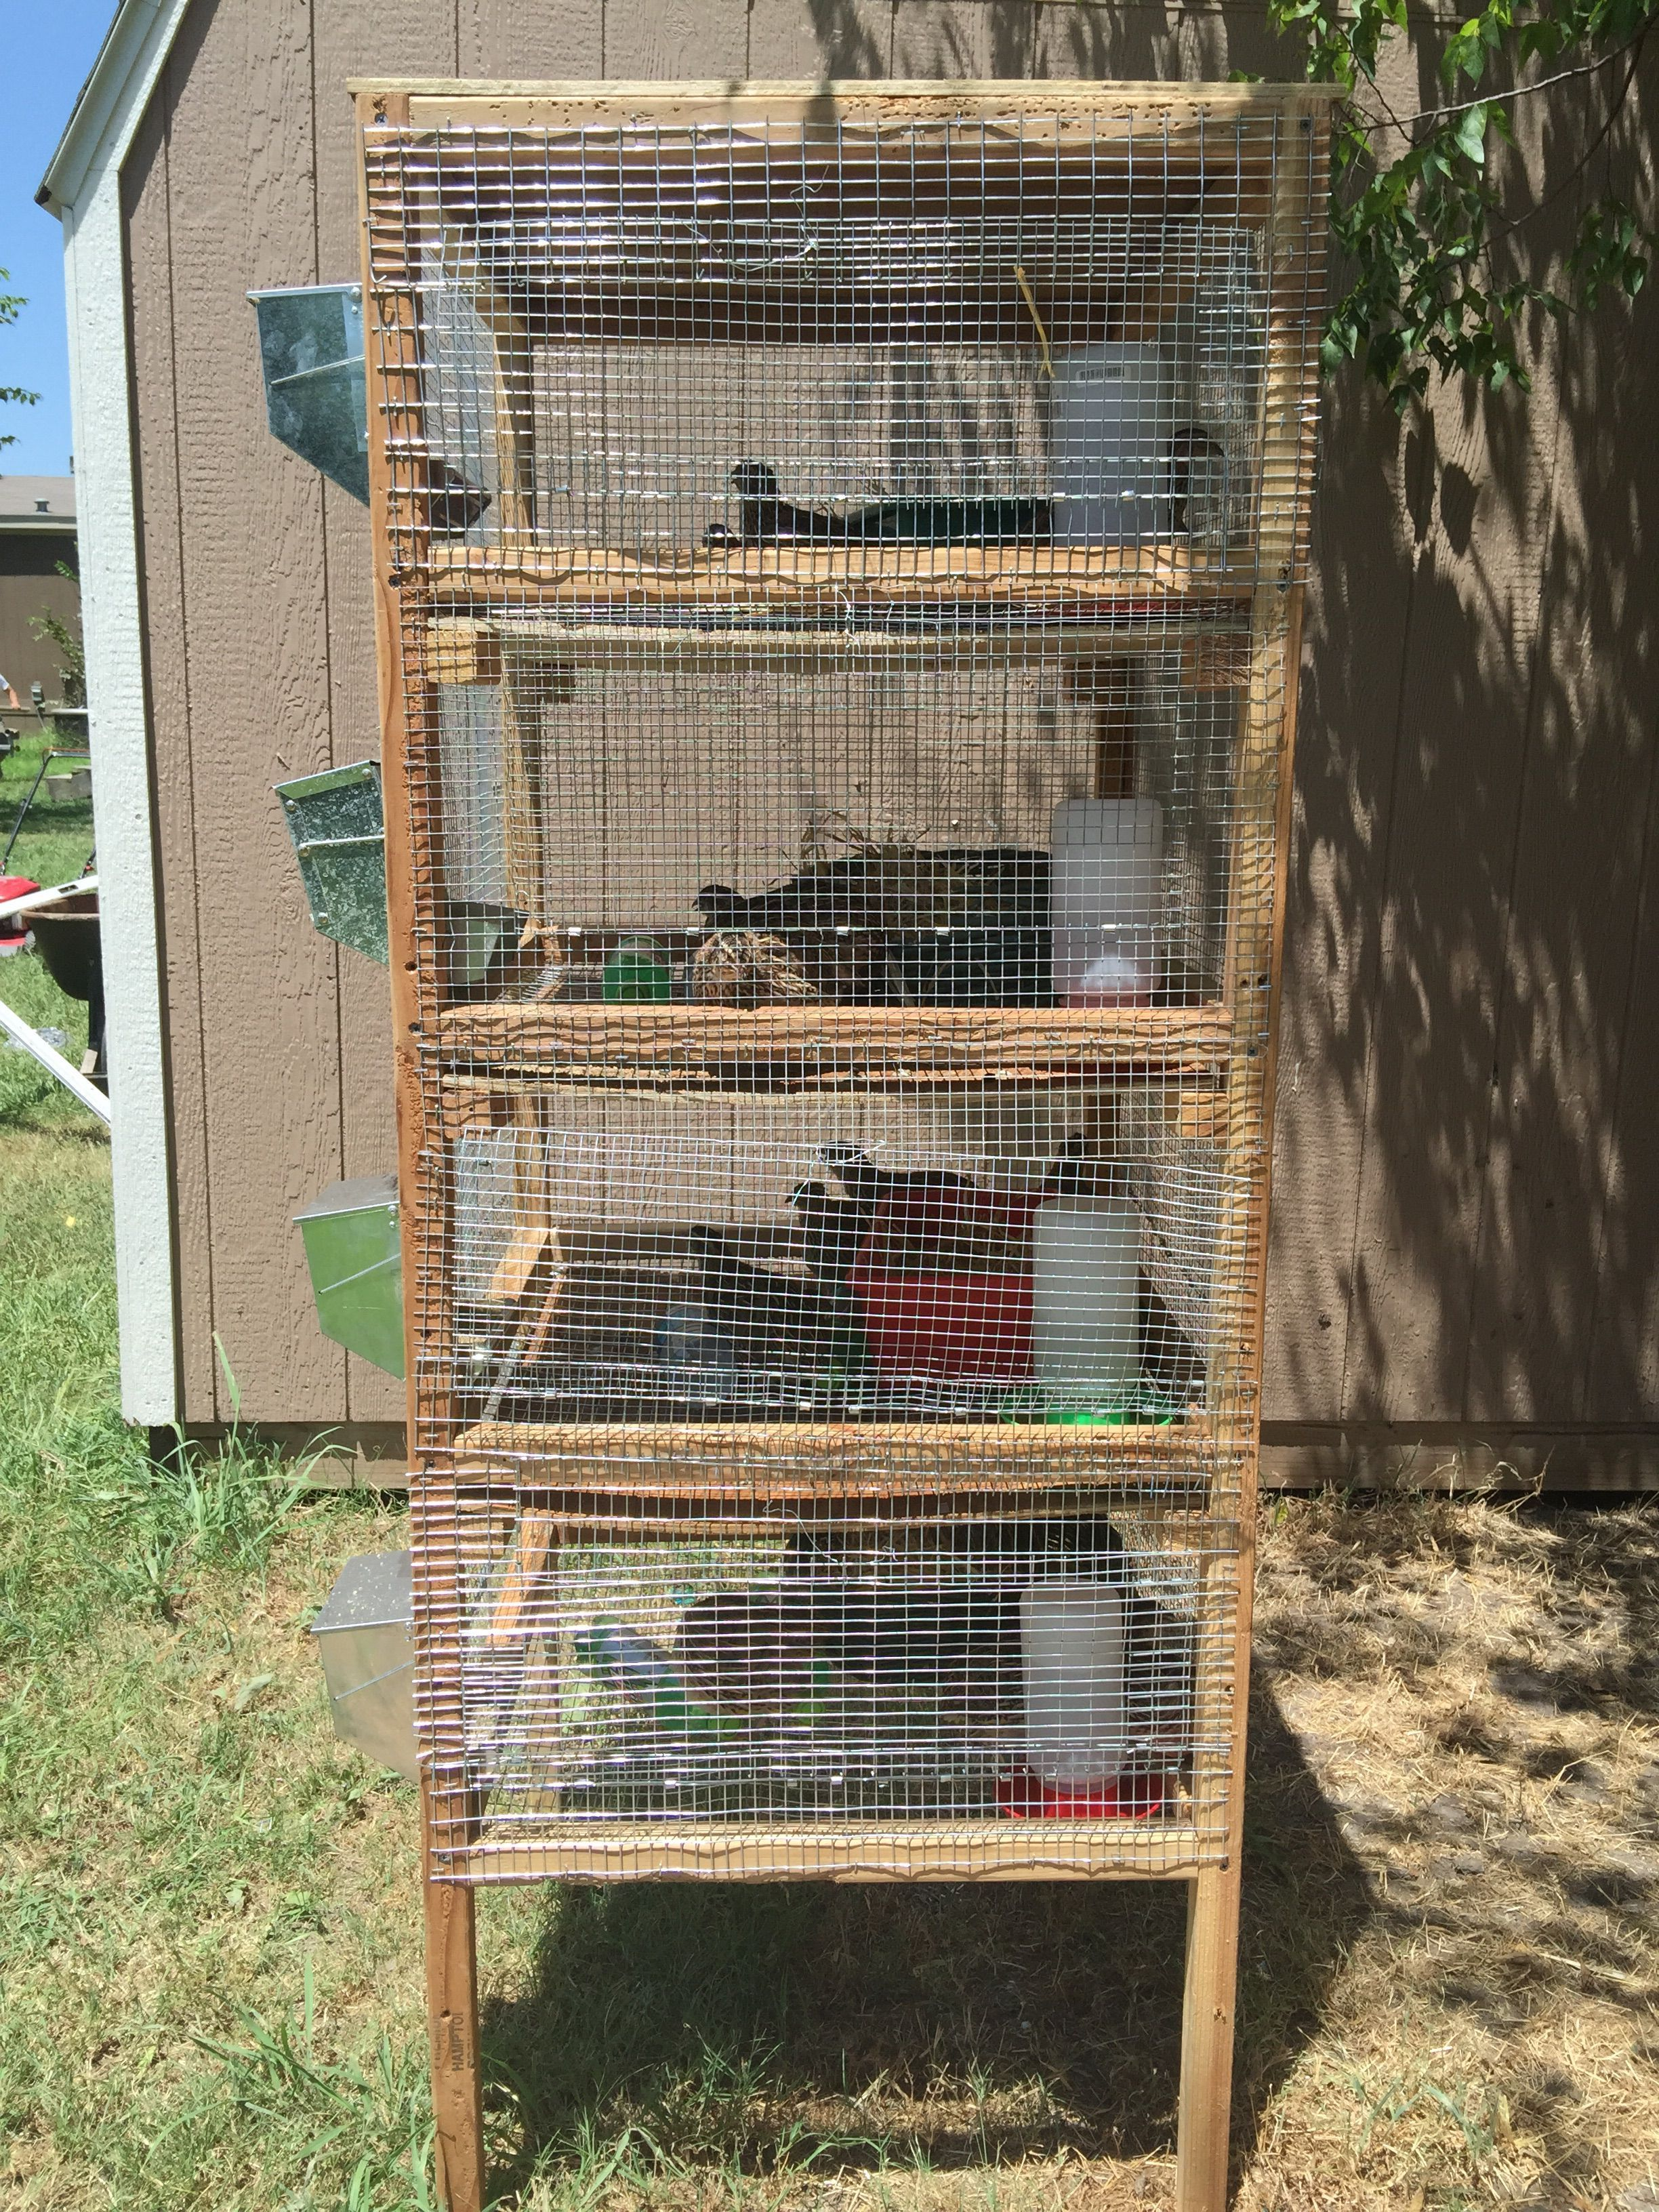 I Turned That Old Mice Rack Into My New Jumbo Brown Coturnix Quail Wwwbackyardchickenscom Forum Uploads 33115eggpartsdiagramgif House Each